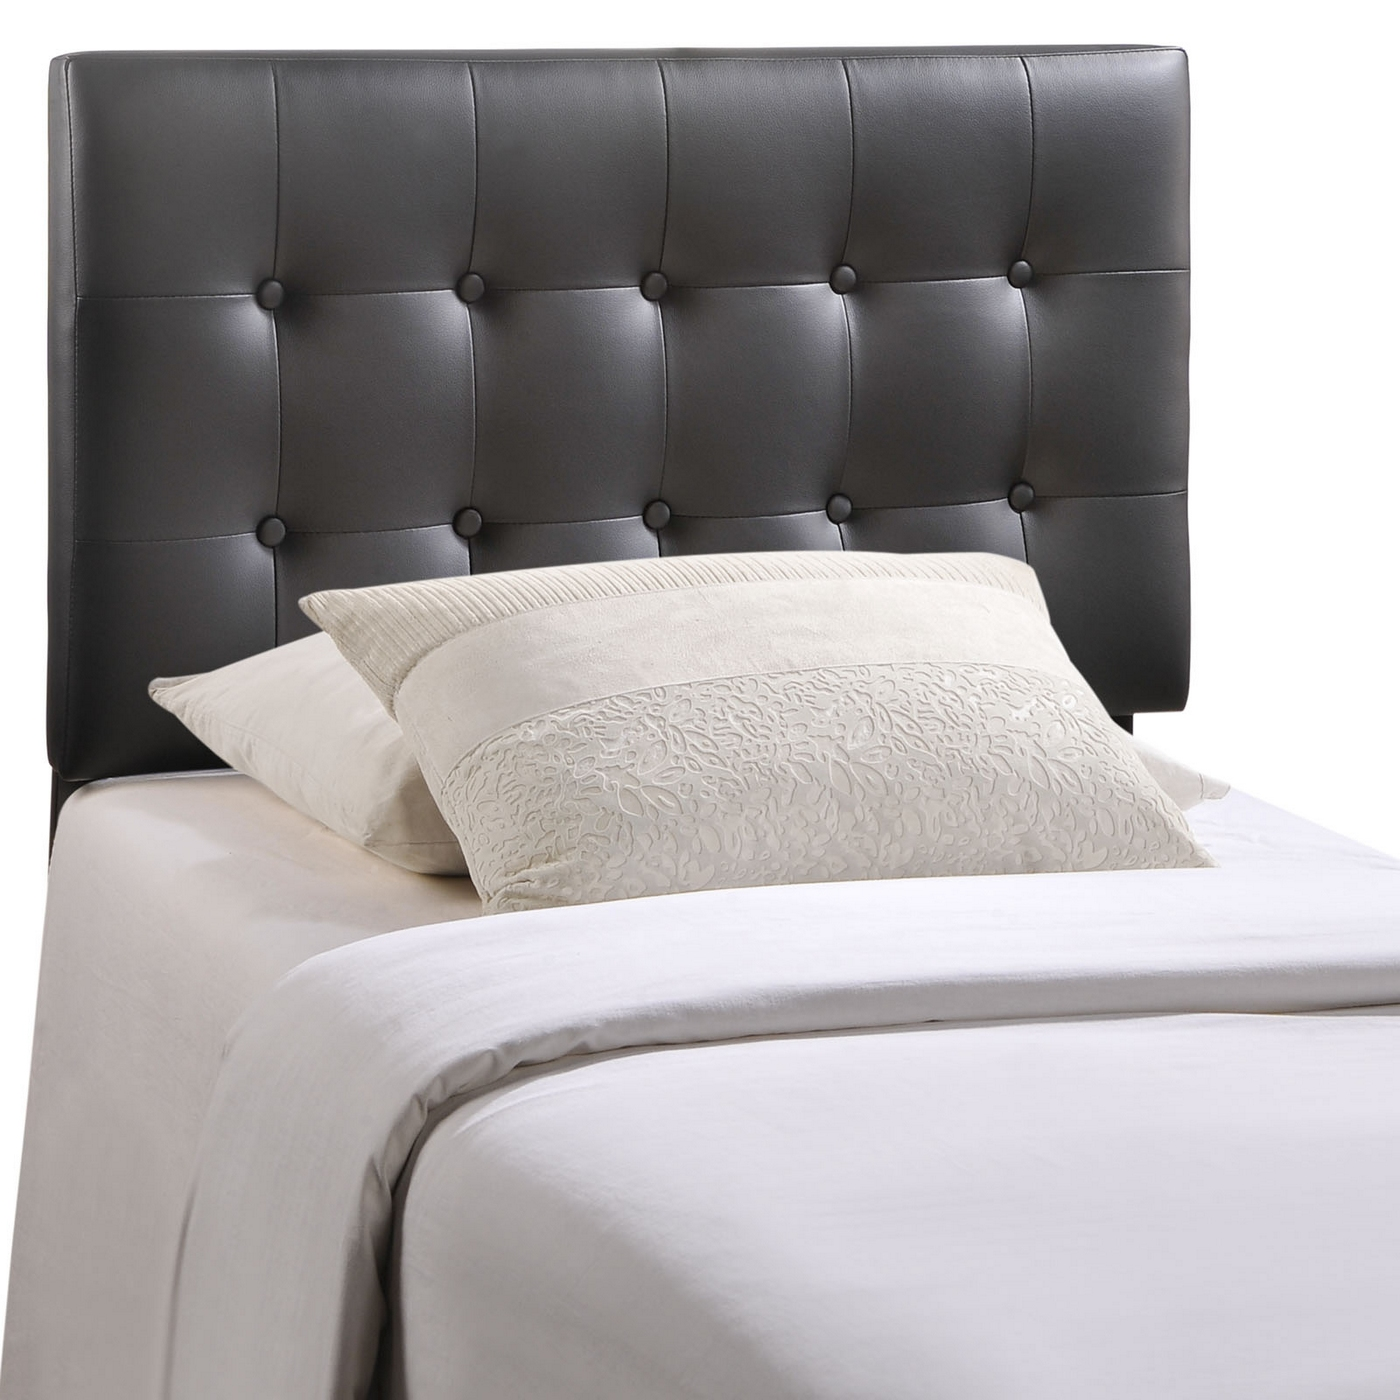 Emily Modern Buttontufted Twin Faux Leather Headboard, Black. Martha Stewart Closets. New Classic Furniture. 48 Inch Bathroom Vanity. Home Builders Greenville Sc. Knick Knack Shelves. Coat Closet. Stone Center Manassas. Bathroom Pocket Door